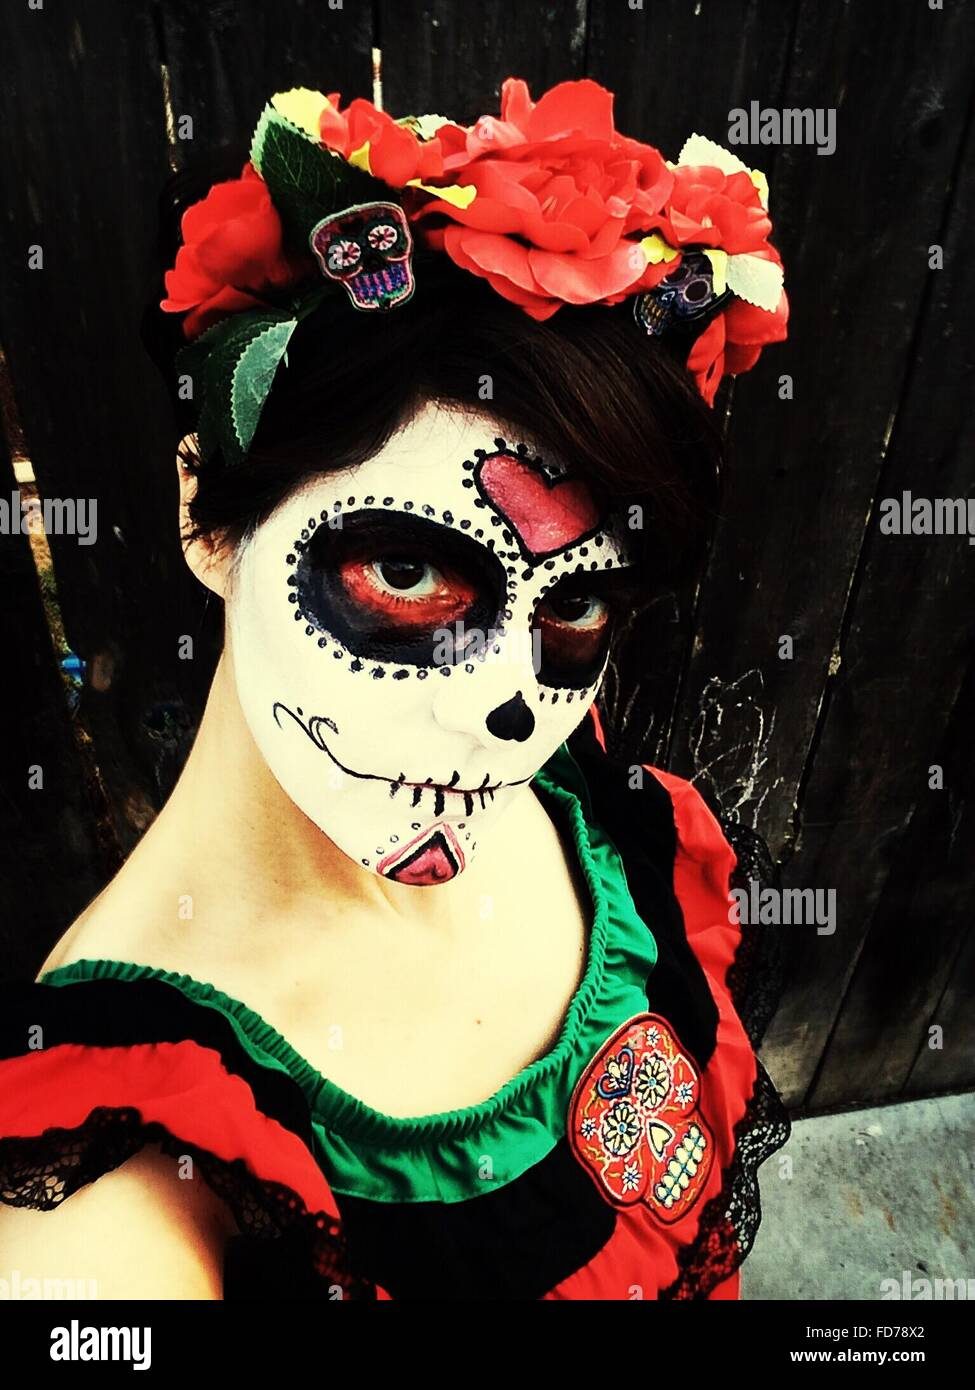 Close-Up Portrait Of Young Woman In Halloween Costume Outdoors - Stock Image